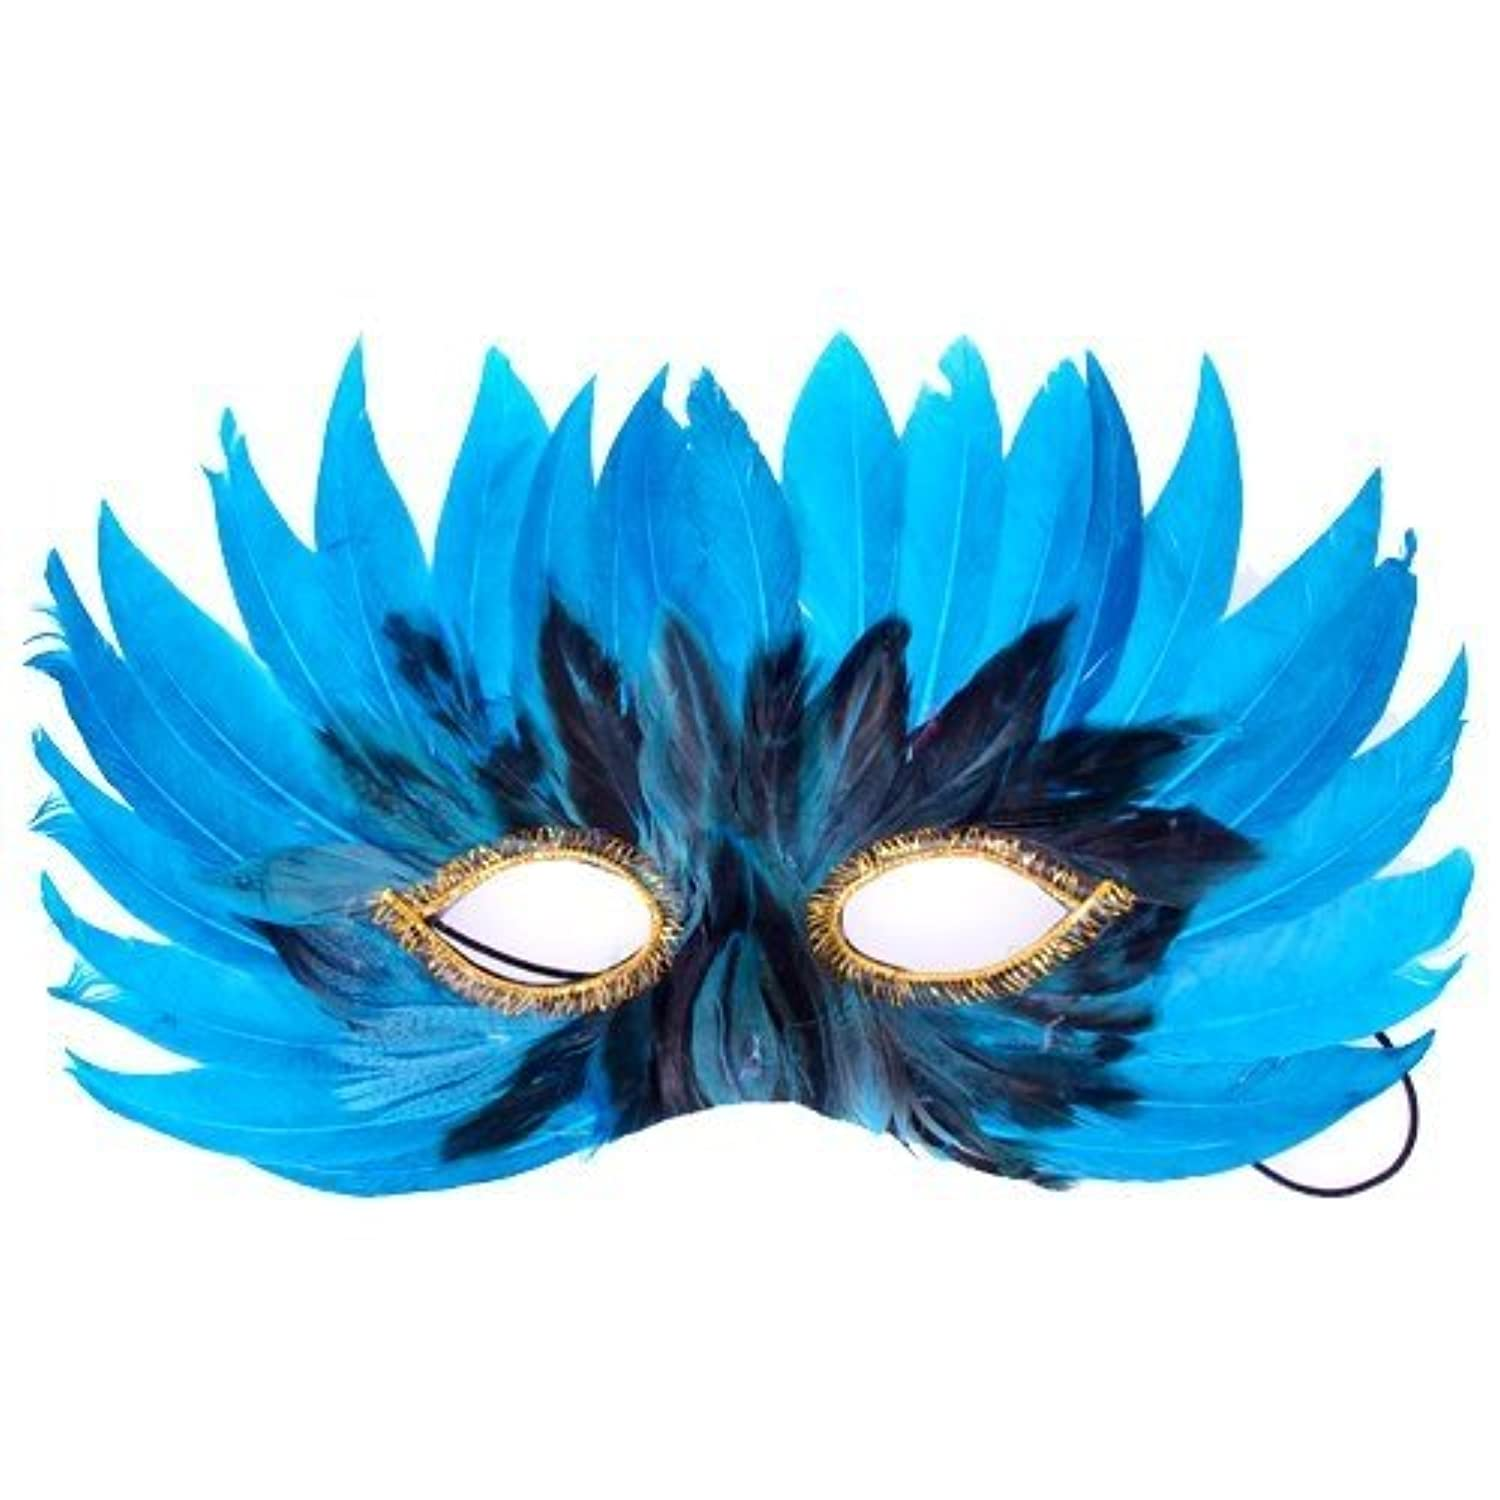 Fun Party Toy - Feather Eye Mask (blue)